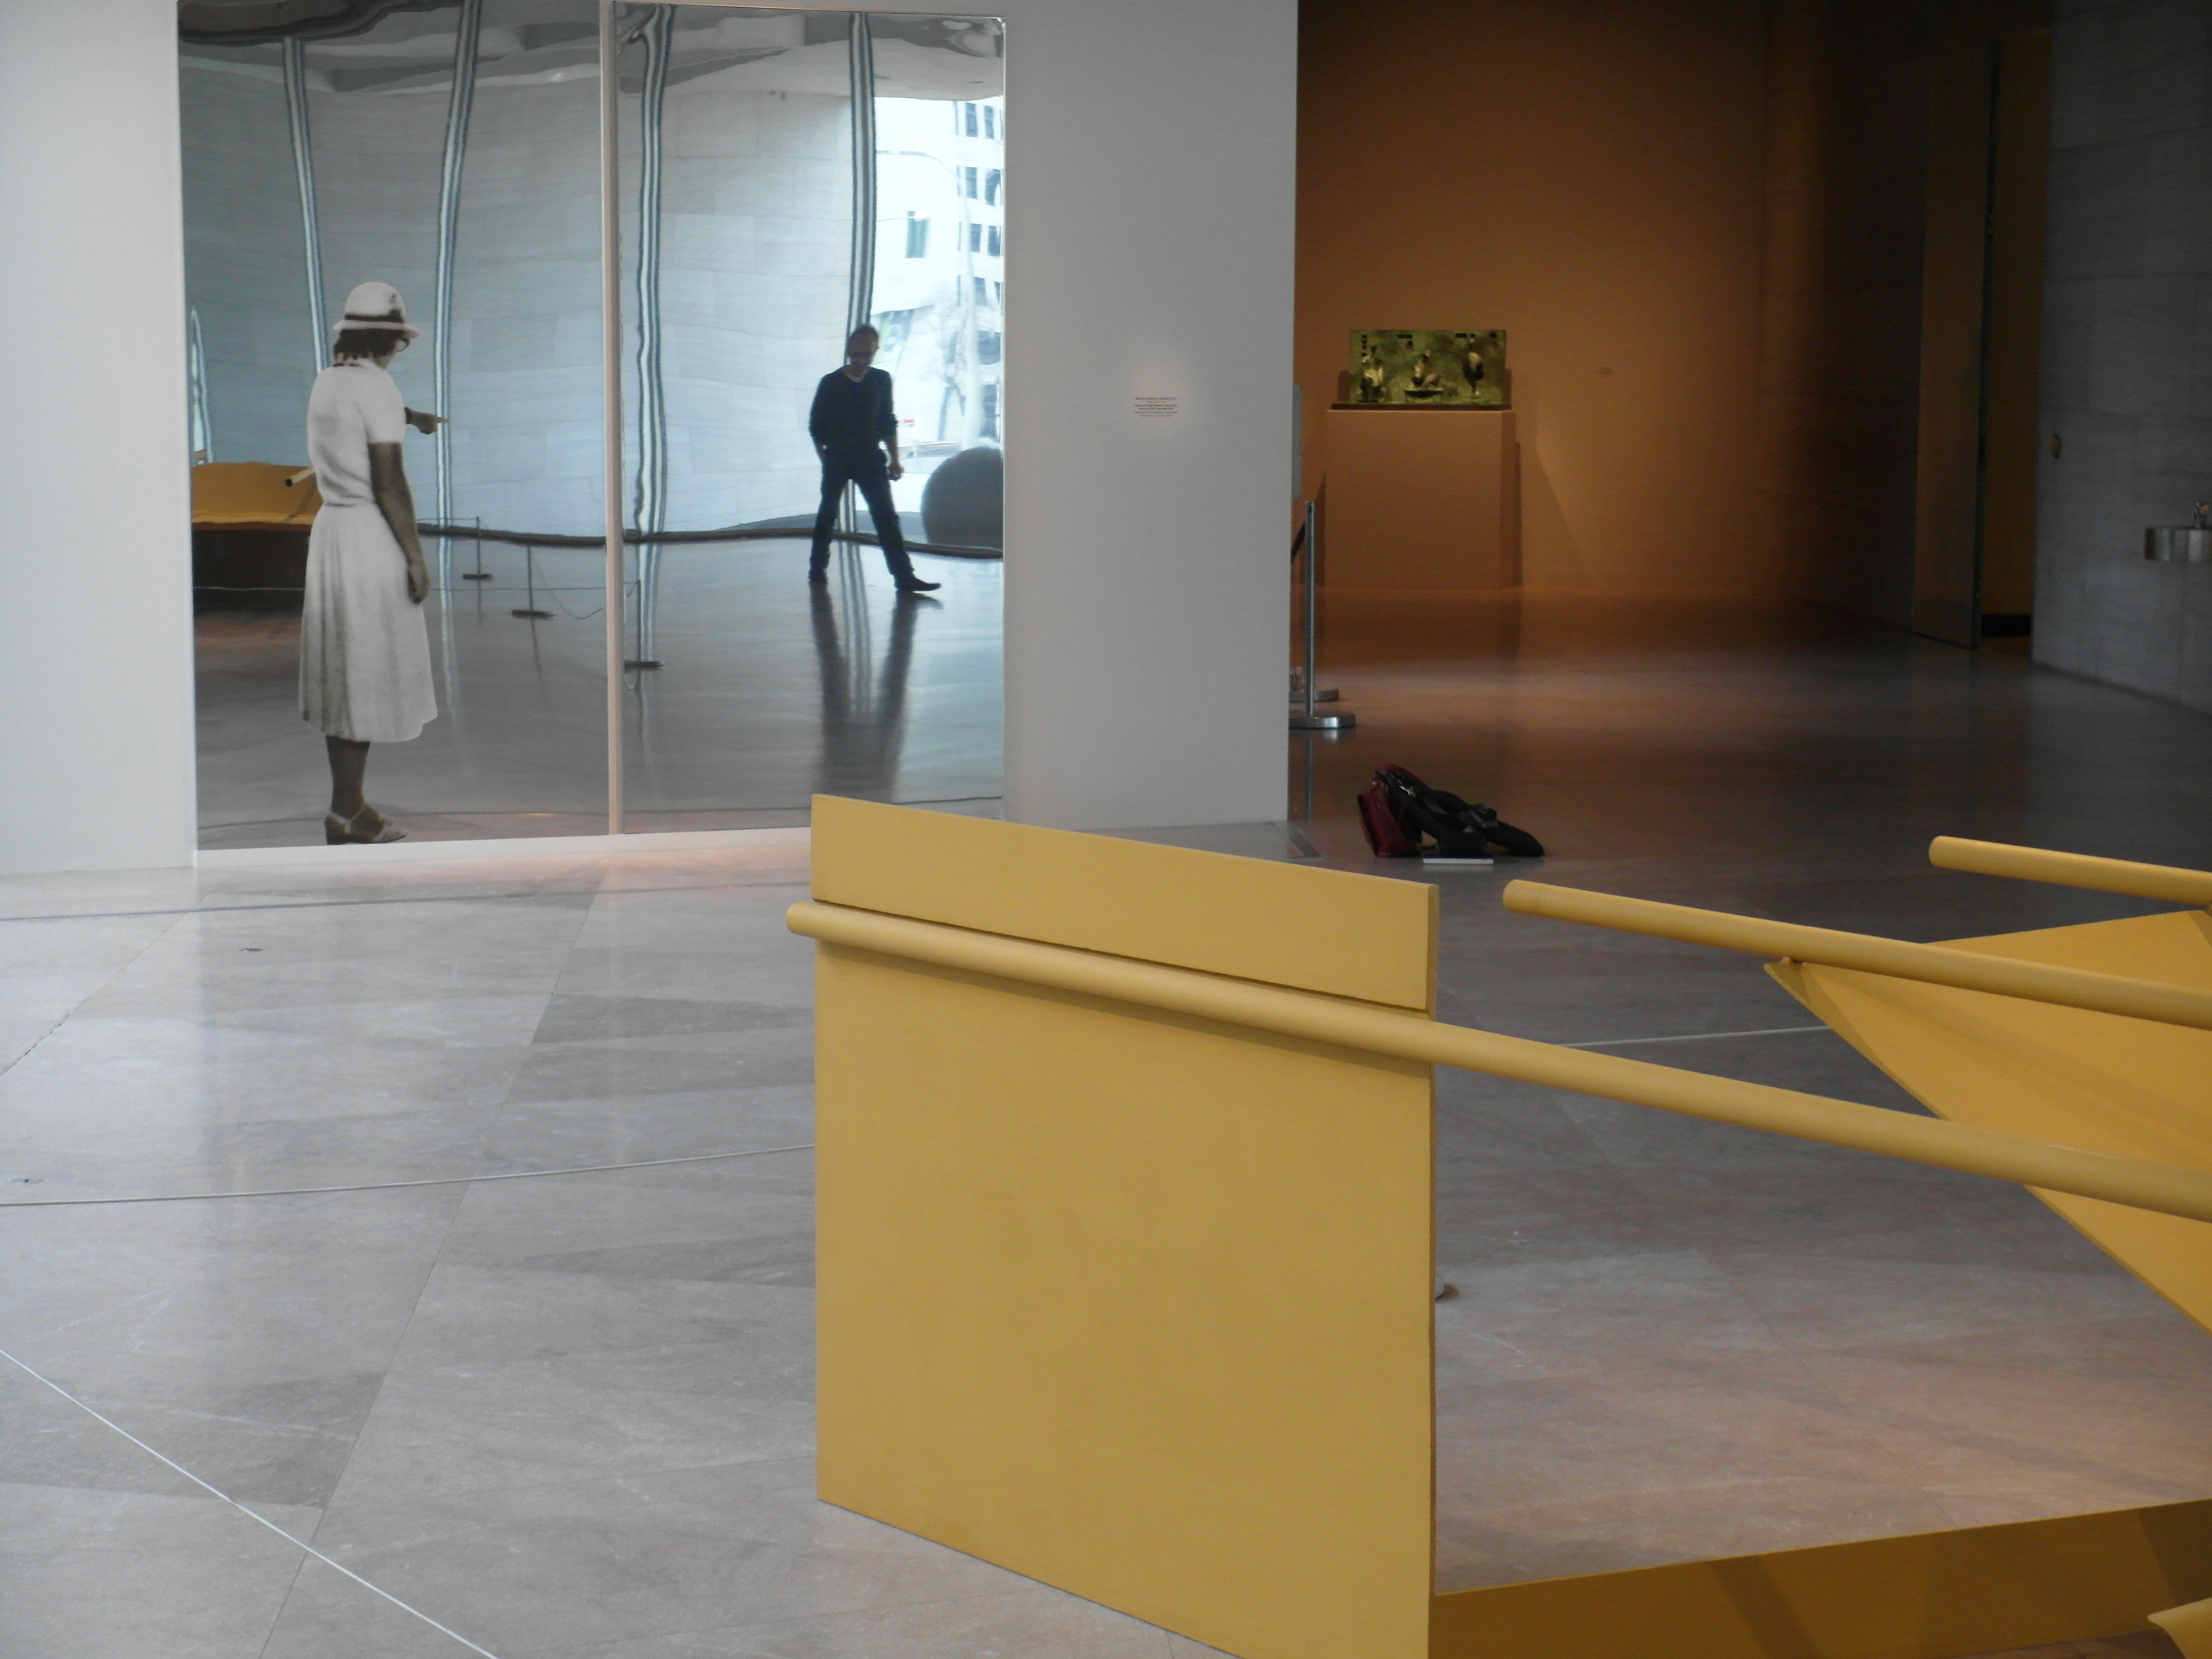 1967, installed at the National Gallery of Art, Washington, DC, 2016. Collection of Lois and Georges de Menil. In the background: Michelangelo Pistoletto, <i>Donna che indica</i> (Woman who points), silkscreen print on polished stainless steel, National Gallery of Art, Washington, DC